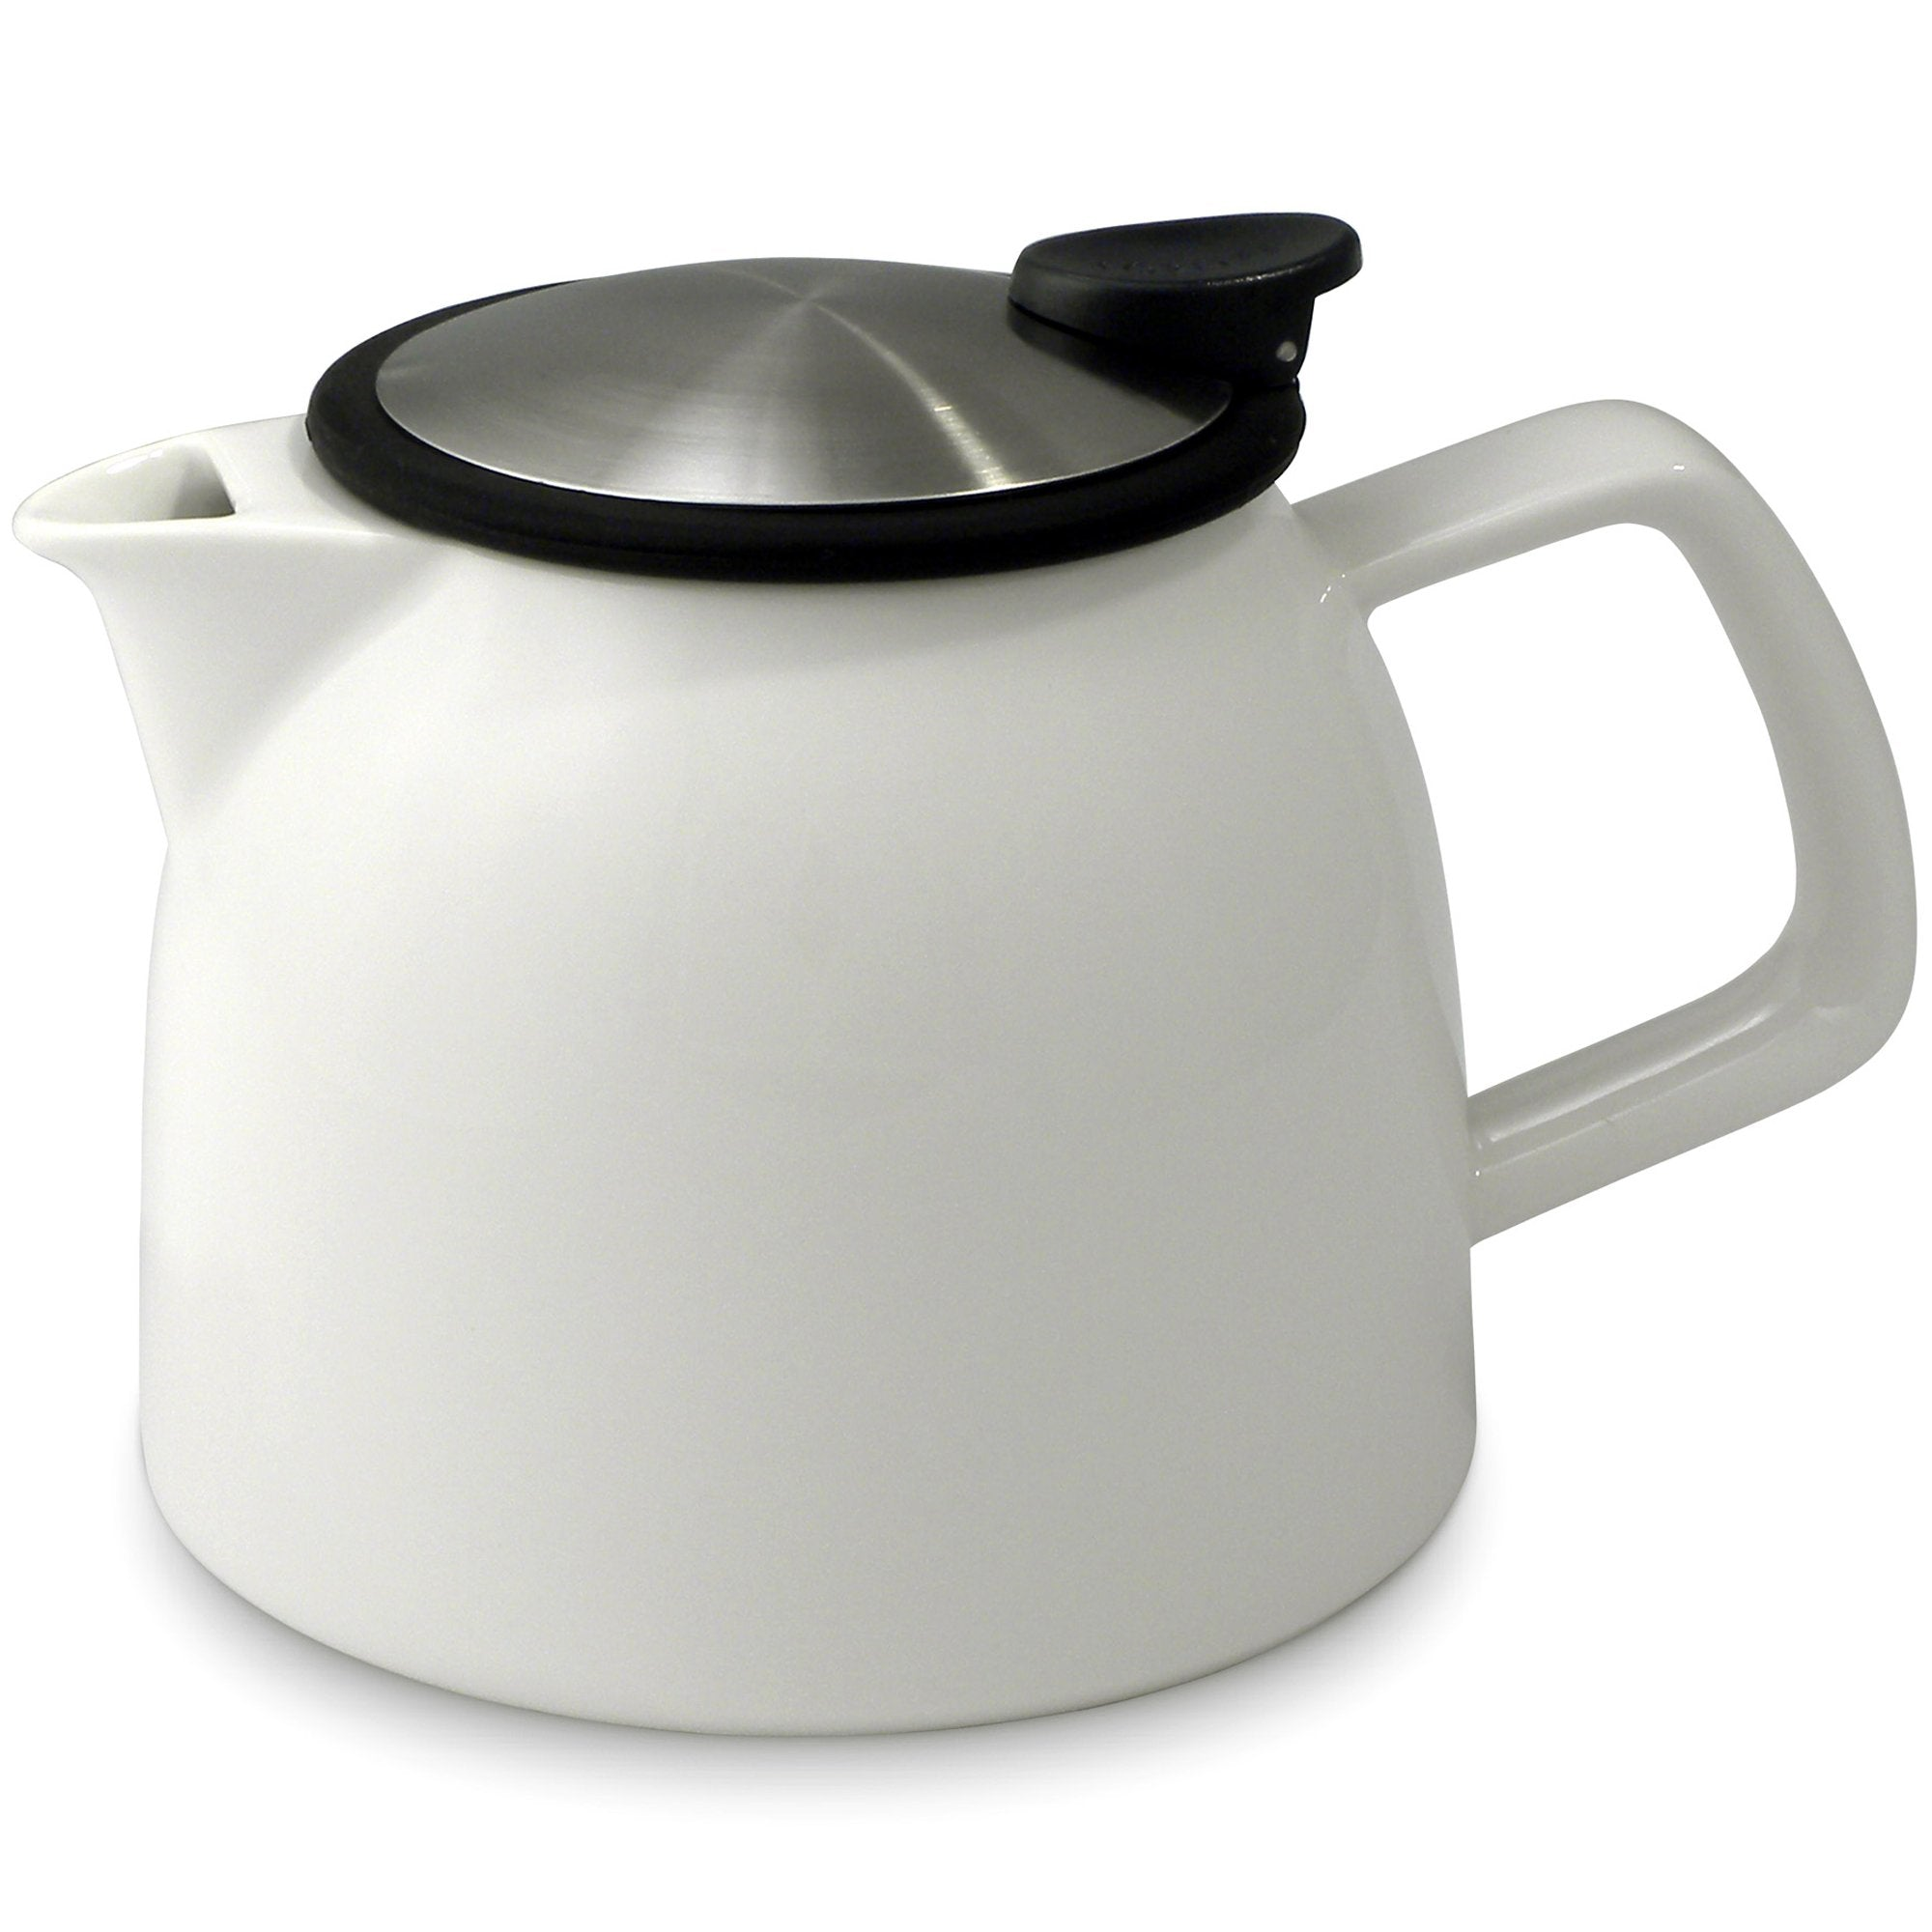 Tealula 26 oz bell-shaped white teapot with square handle and black and silver detachable push-on-lid